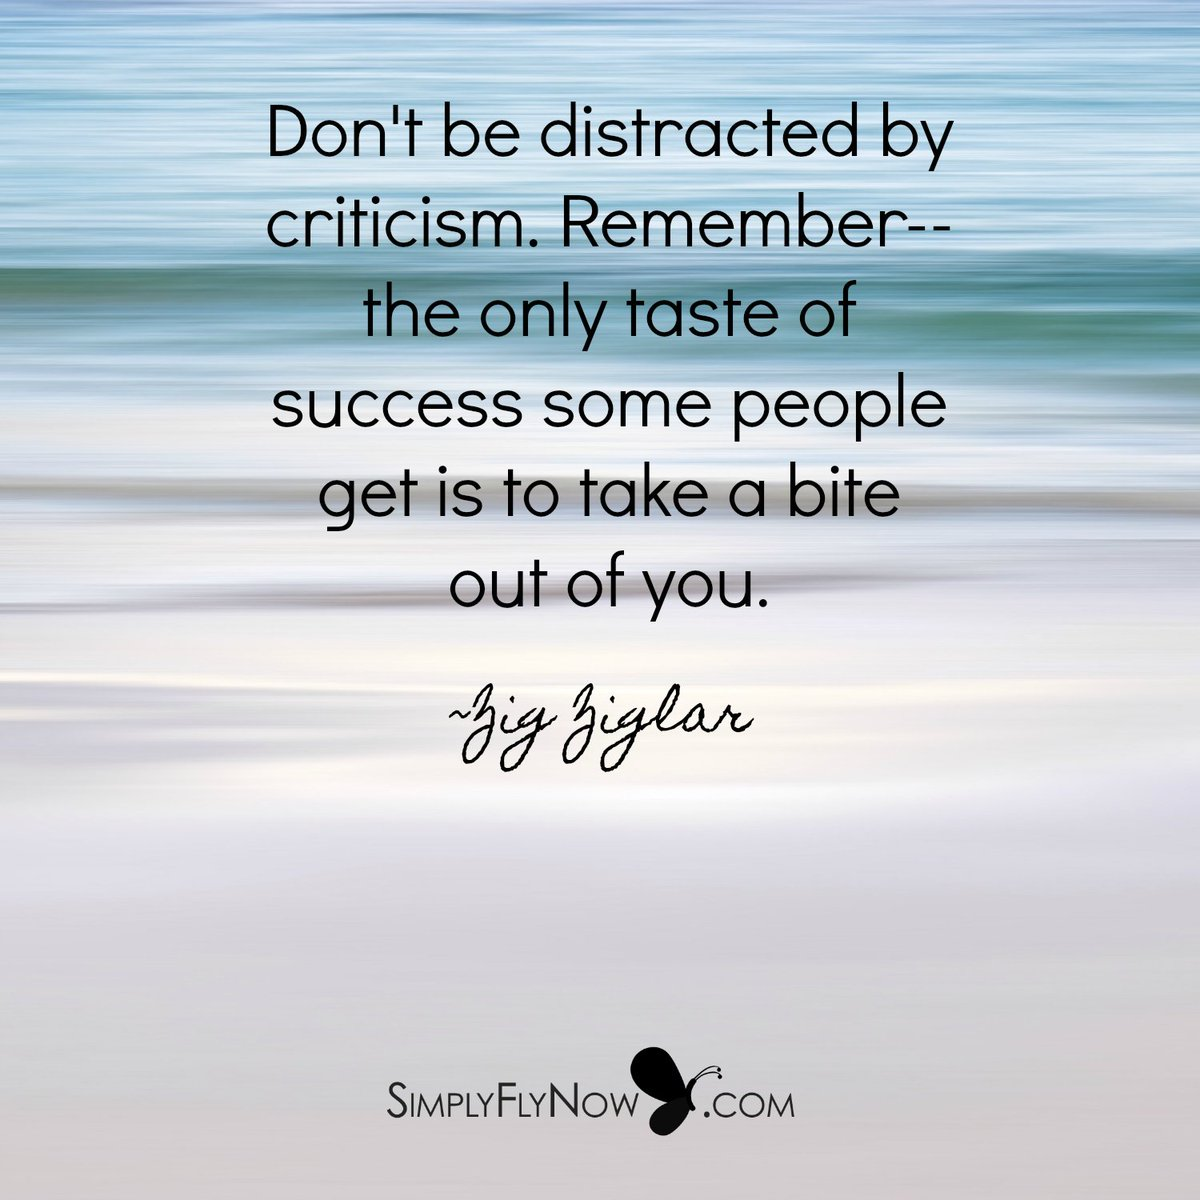 If you want to be successful stay away from negative minds.  https:// simplyflynow.com/ignoring-criti cism/ &nbsp; …    #SuccessTRAIN #SimplyFlyNow #SmallBiz #entrepreneurs<br>http://pic.twitter.com/YefGY1z4wt